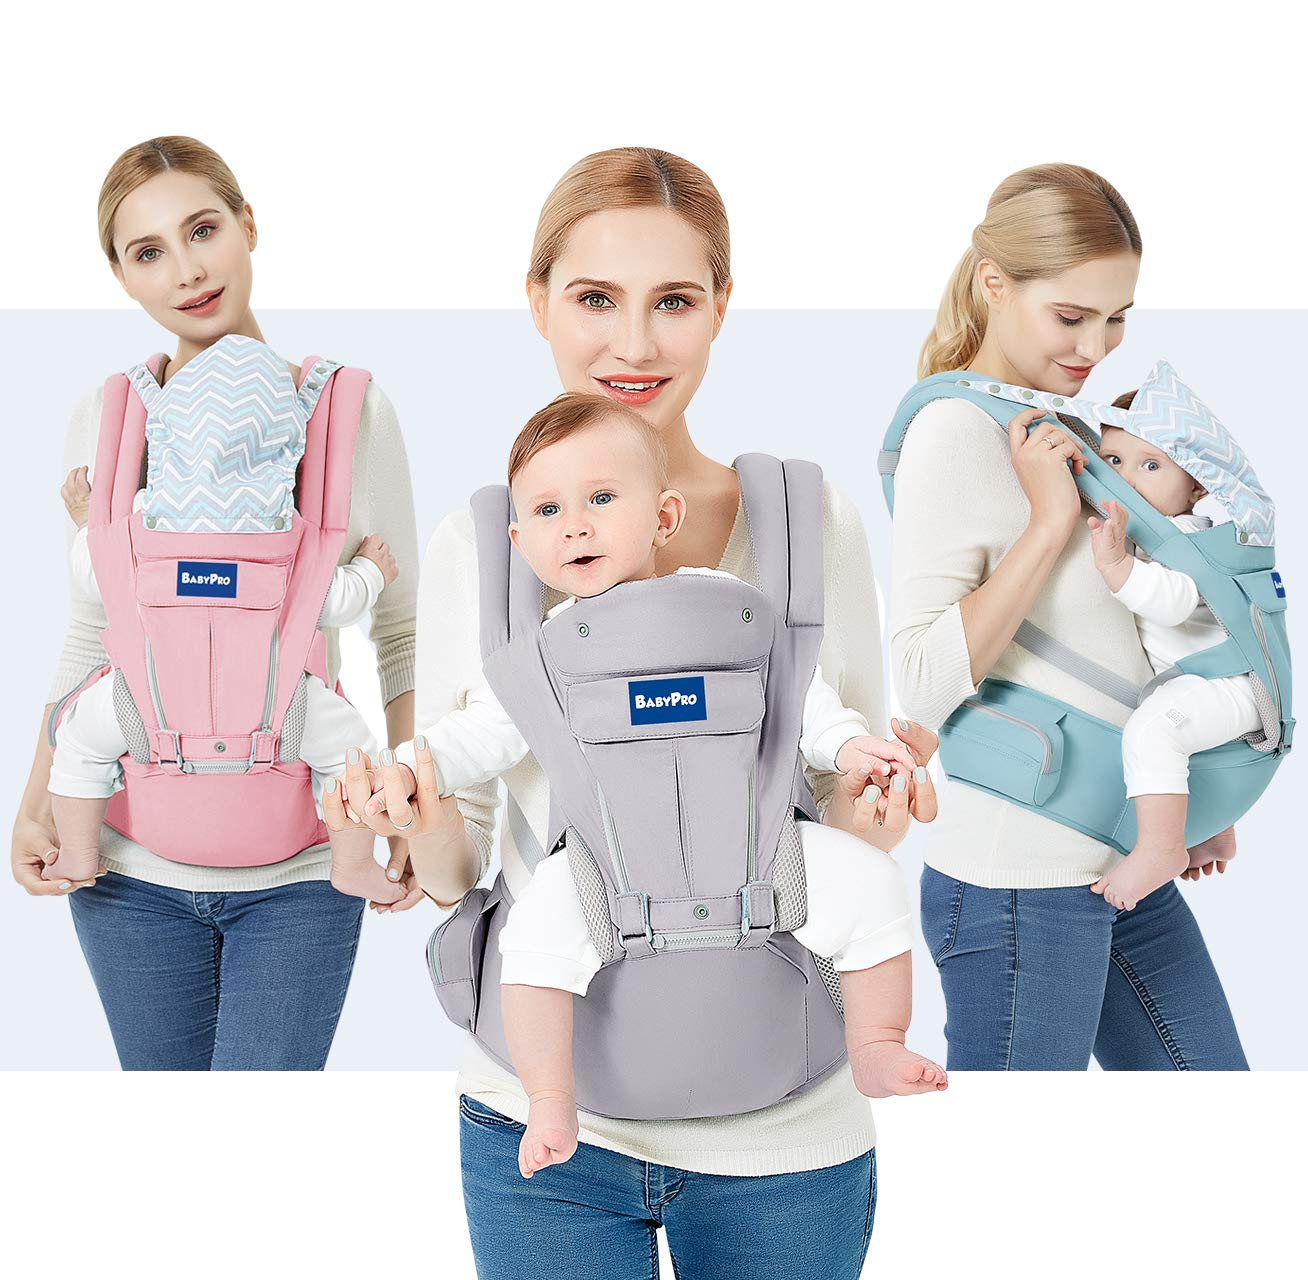 BabyPro Baby Carrier with Hip Seat, 9 Ergonomic Positions, All Season Baby Sling for Newborns Infants Toddlers, Hands Free Baby Carrier Wrap Front and Backpack for Traveling, Hiking and Breastfeeding